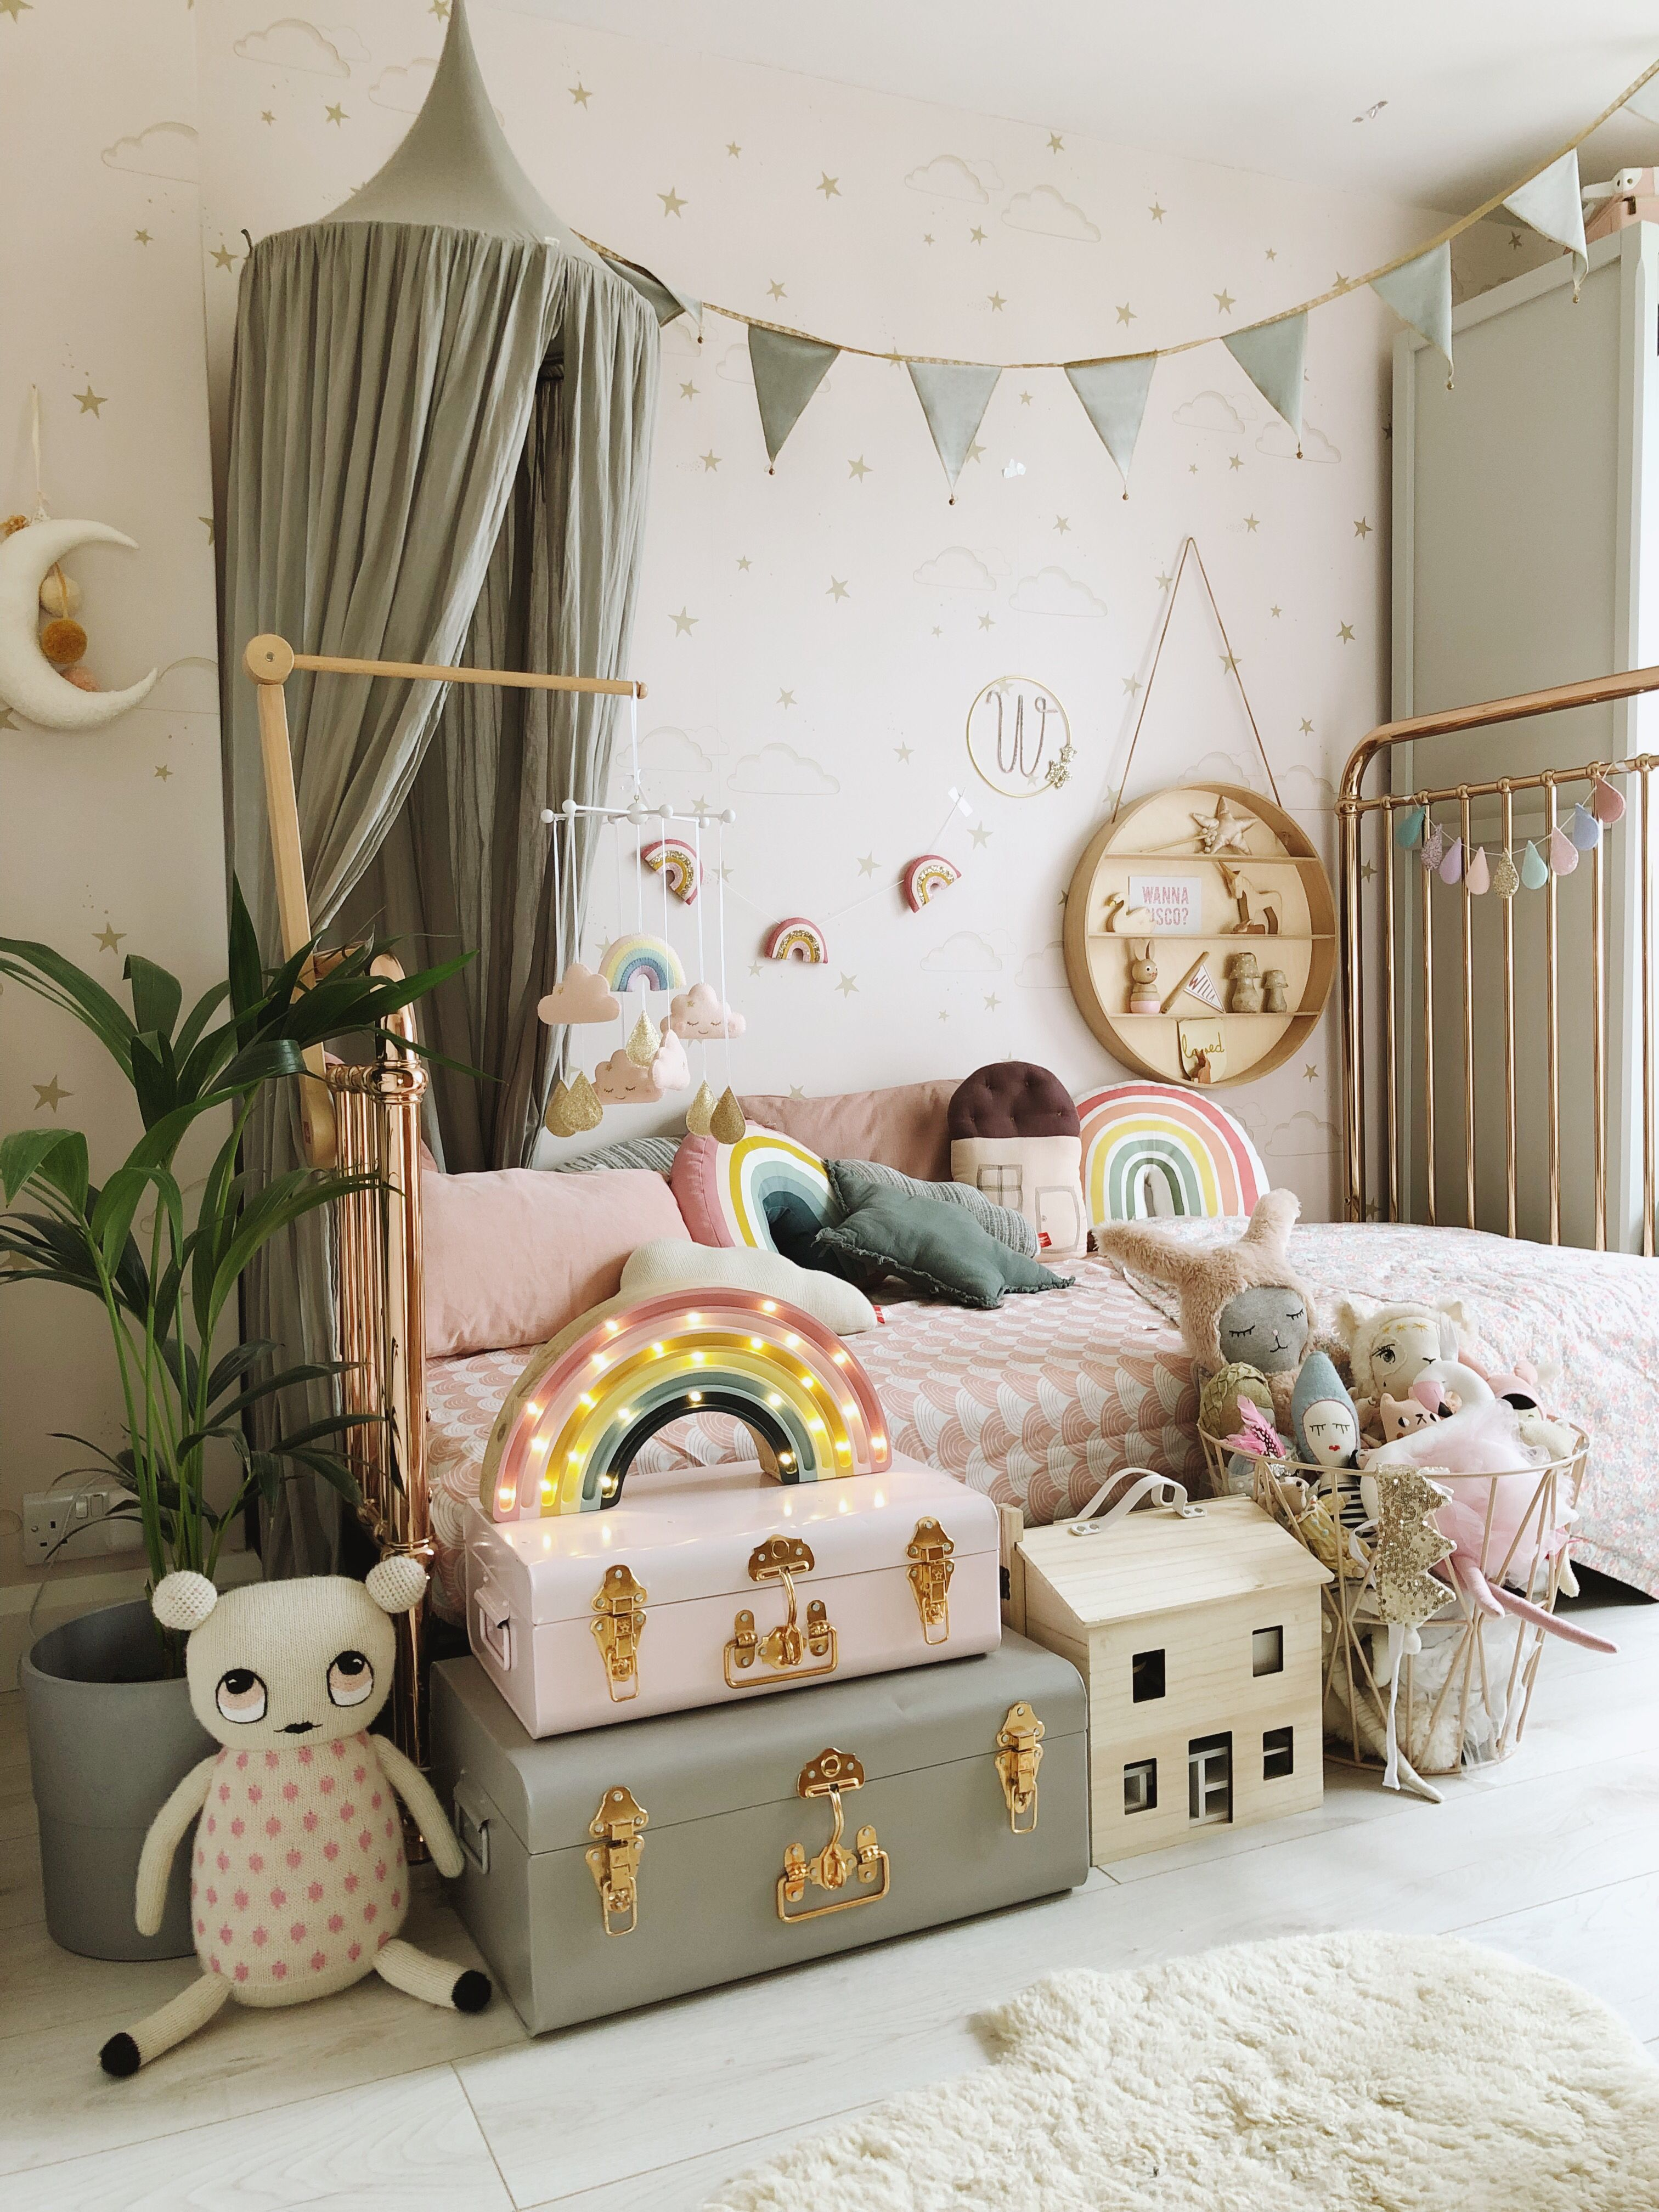 A dreamy girls bedroom with soft grey bed canopy and bunting by Numero74, rainbow bed sheet by Swedish Linens, rainbow light by Little Lights, and garlands and mobiles by Velveteen Babies  Styled by V is part of Dreamy girls bedroom -